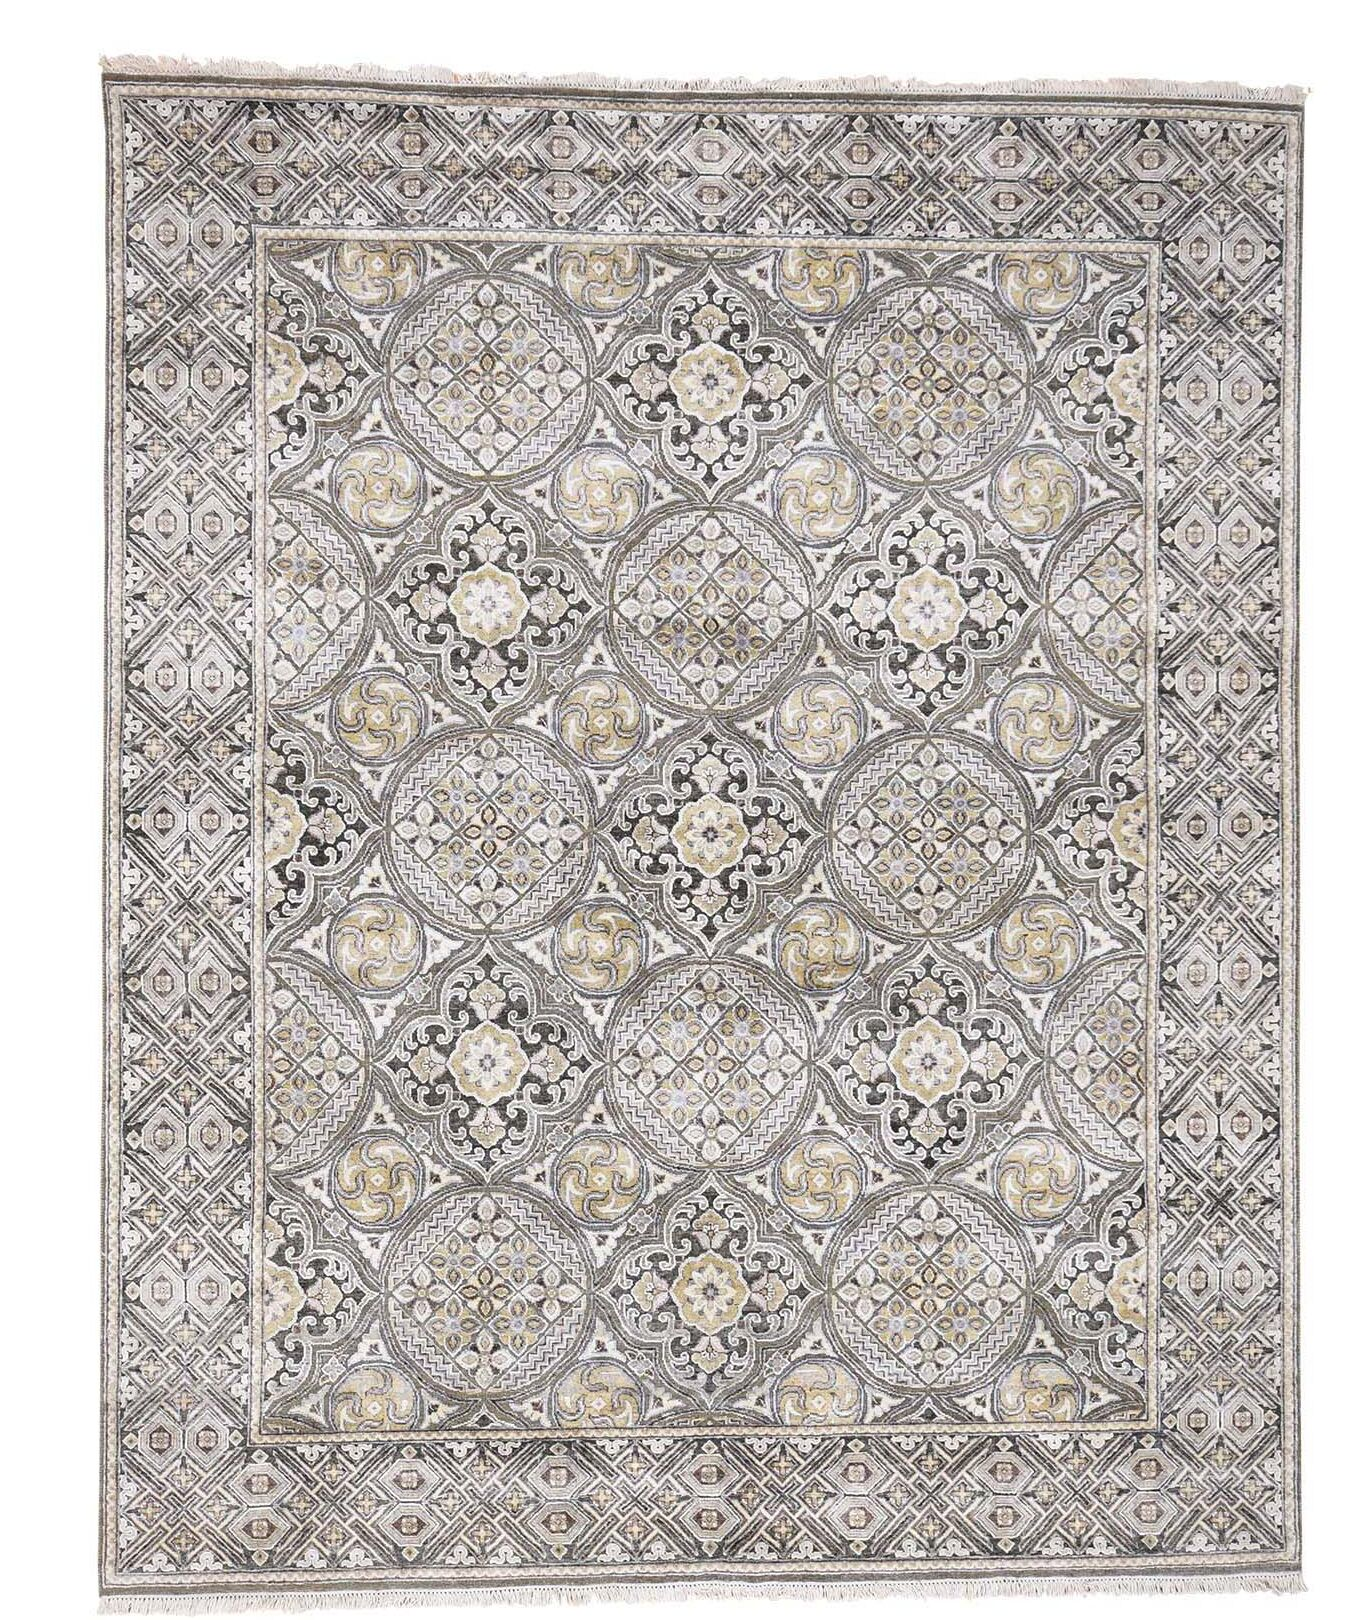 One-of-a-Kind Oidized Mughal Inspi Medallions Hand-Knotted Ivory Area Rug